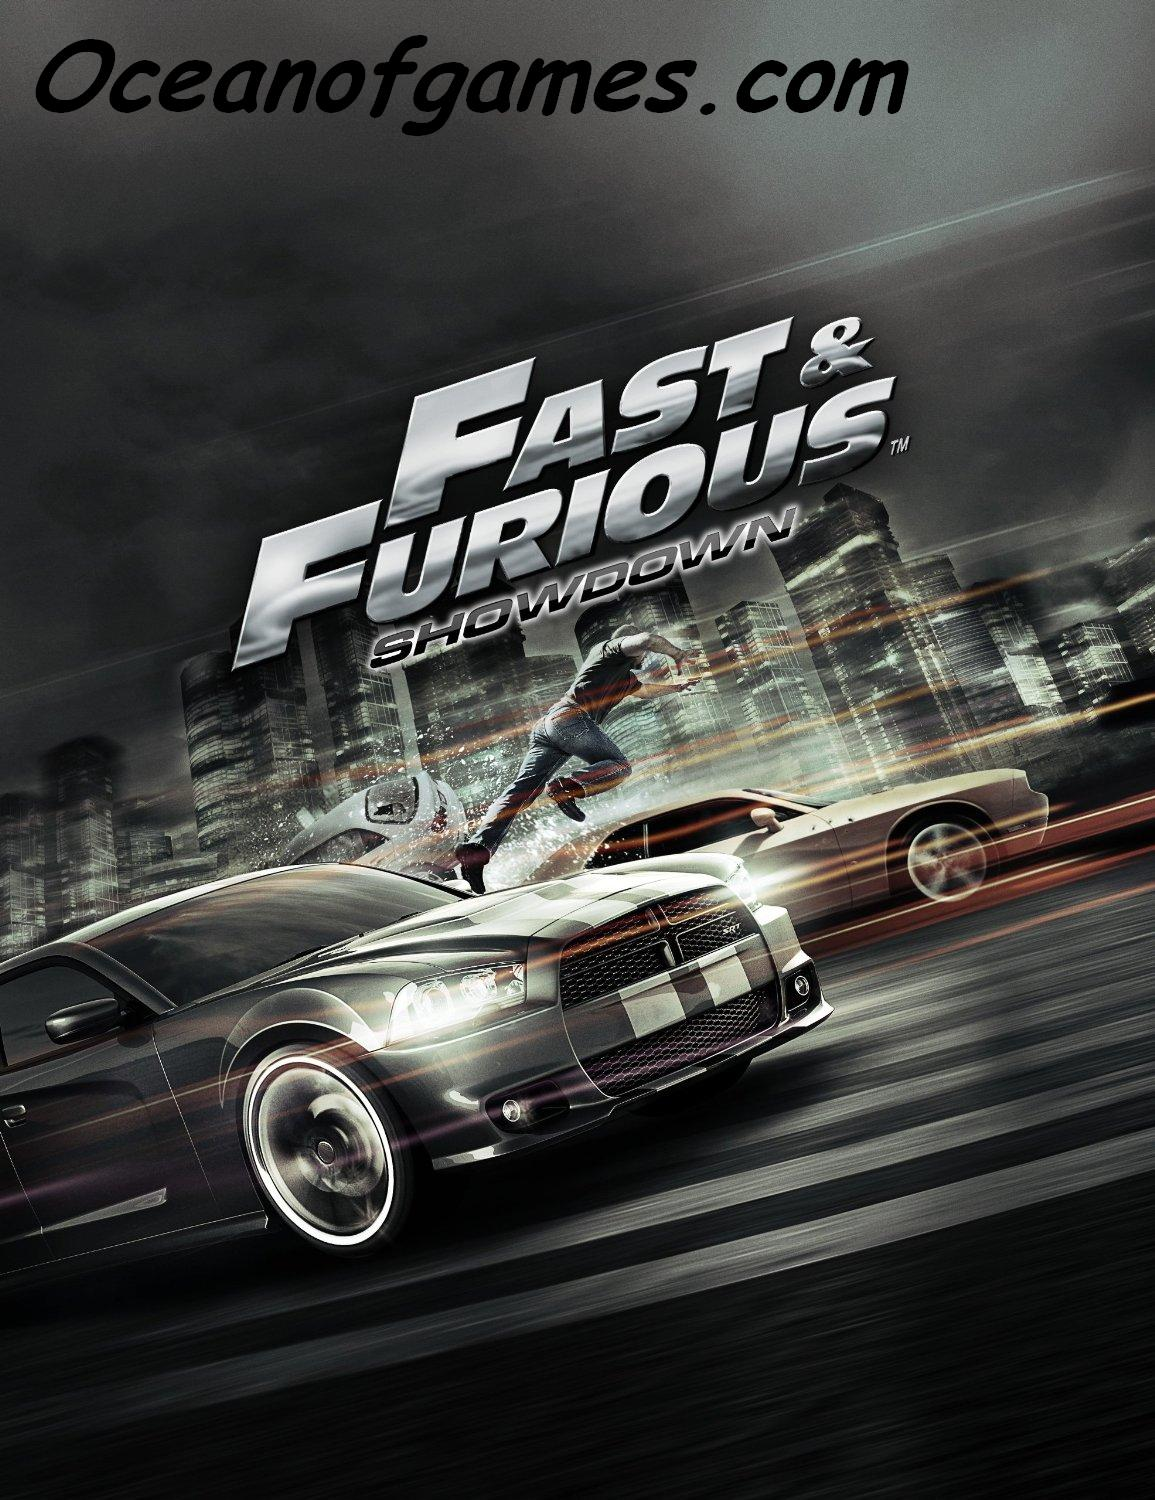 Fast and furious 5 zip file